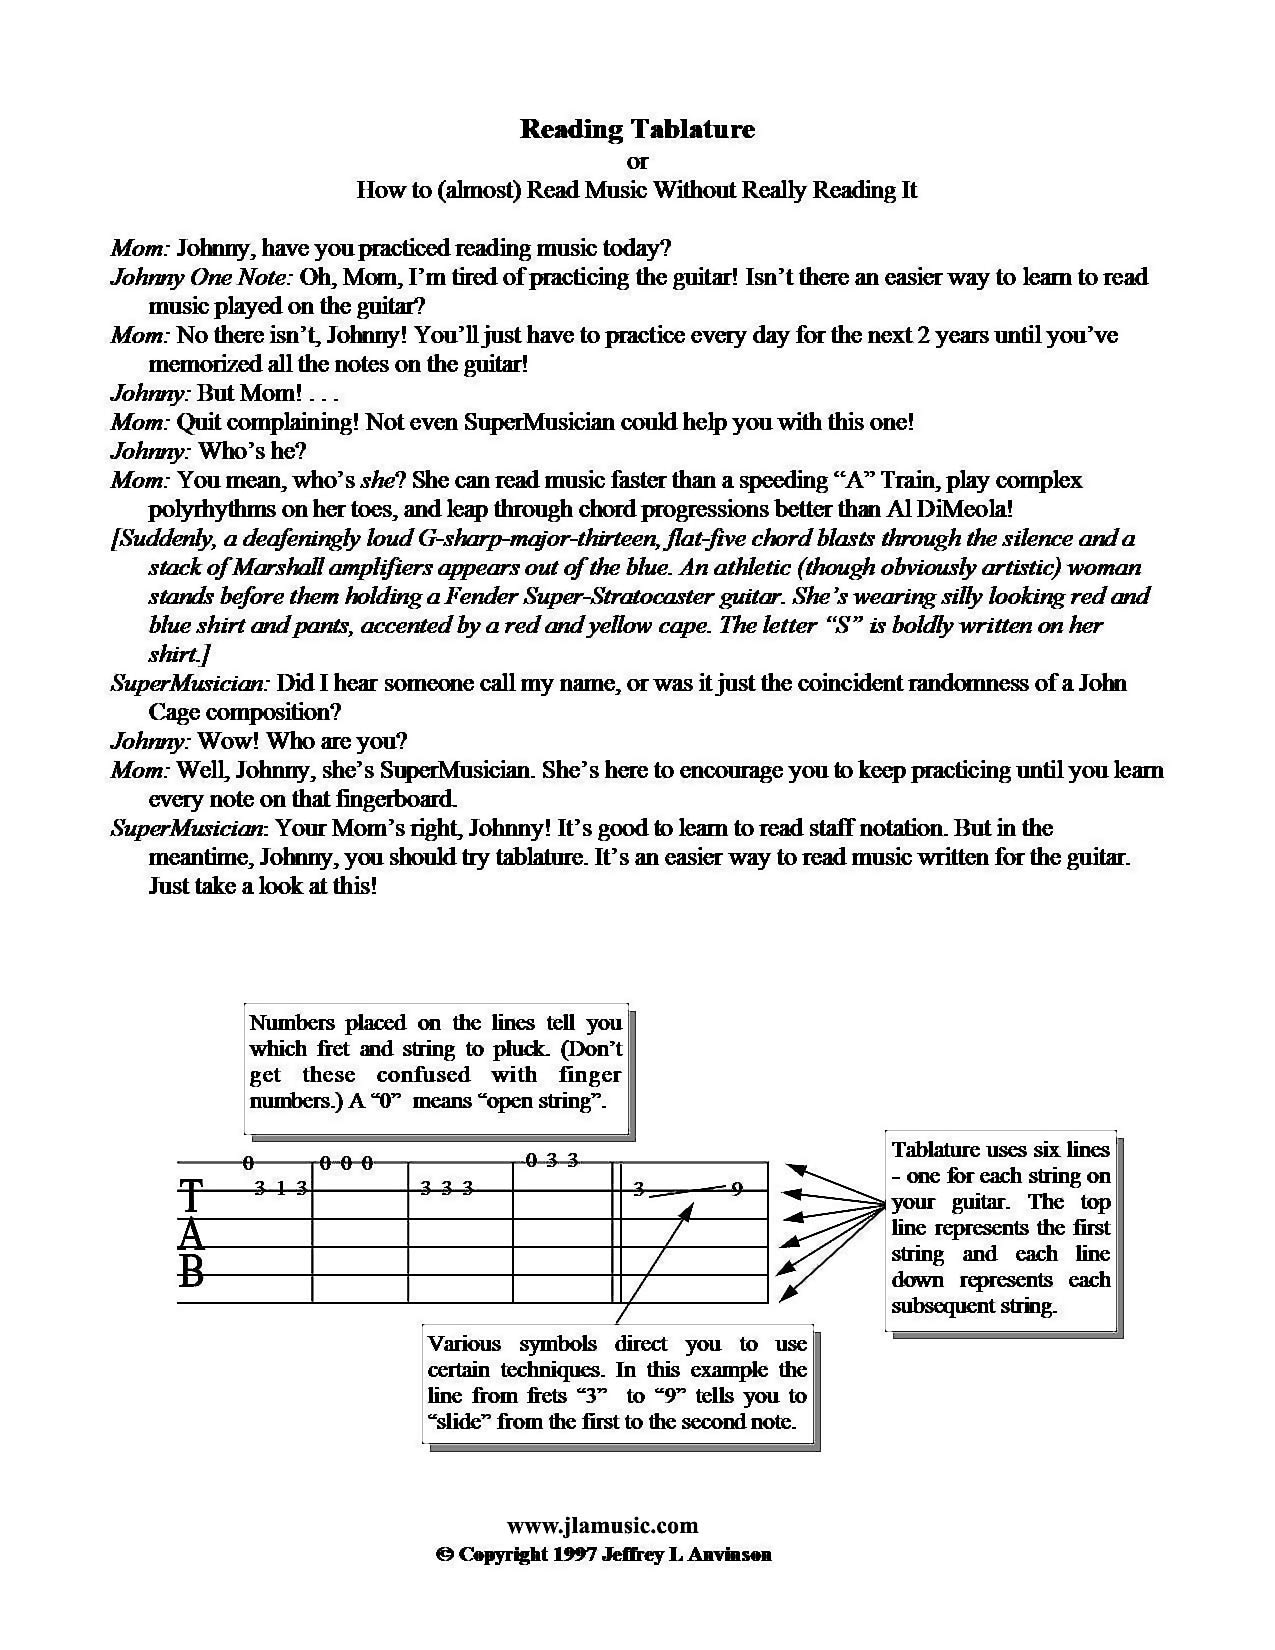 Reading Tablature - copyright 1997 Jeffrey L Anvinson